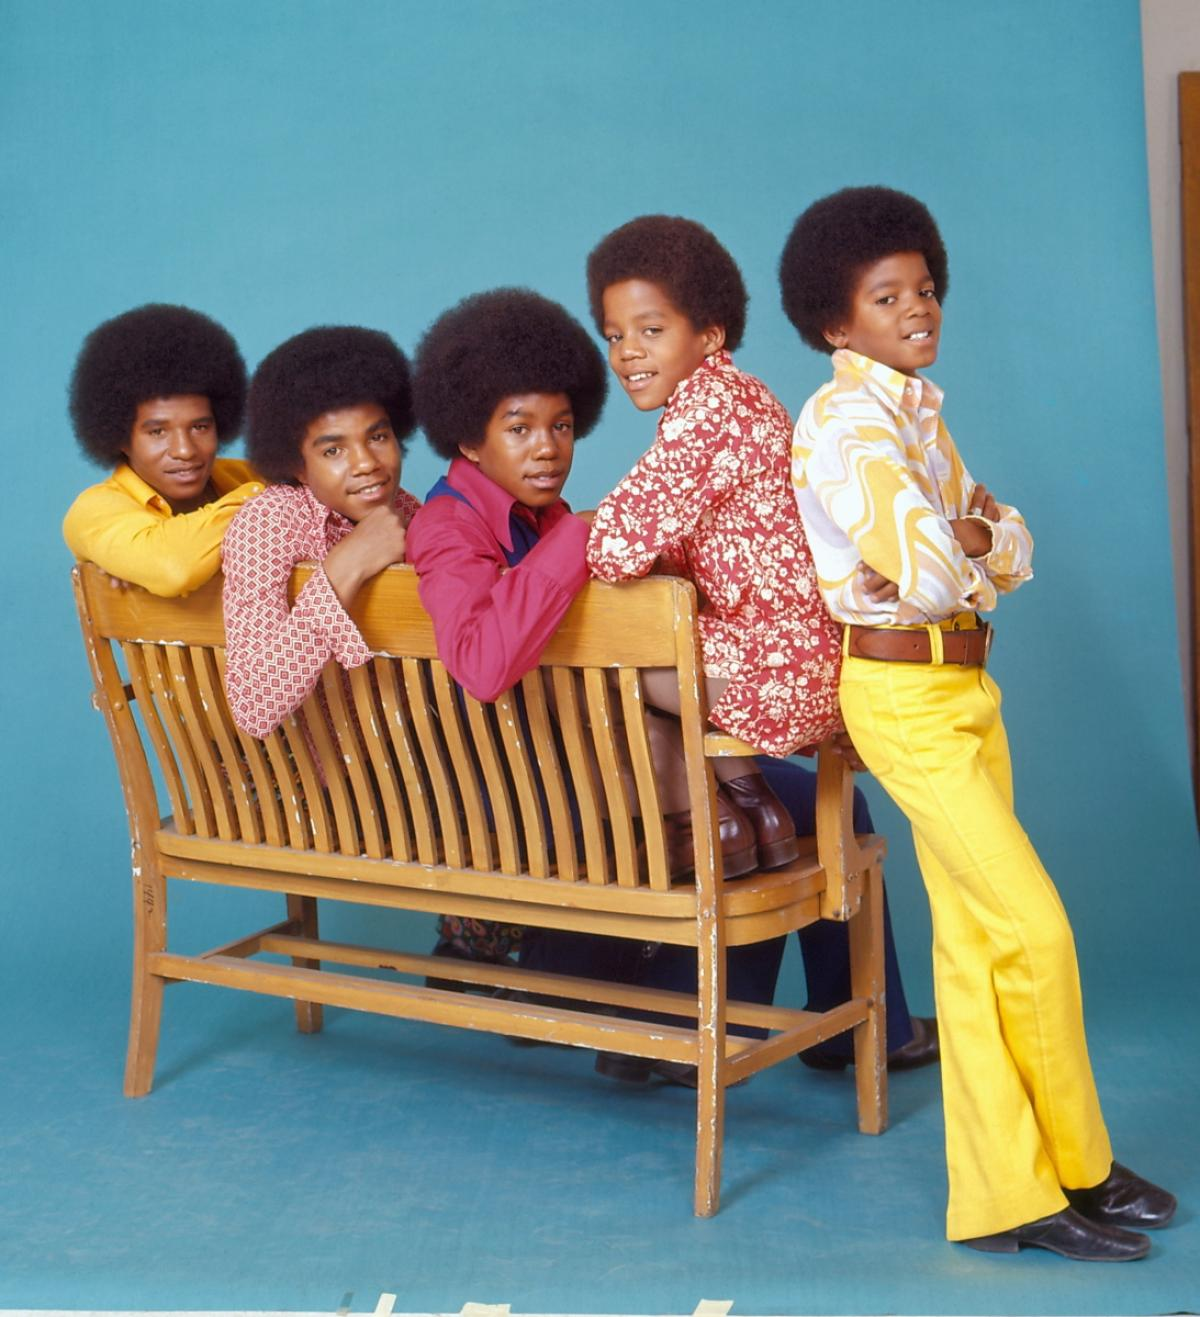 Amazing The Jackson 5 Pictures & Backgrounds